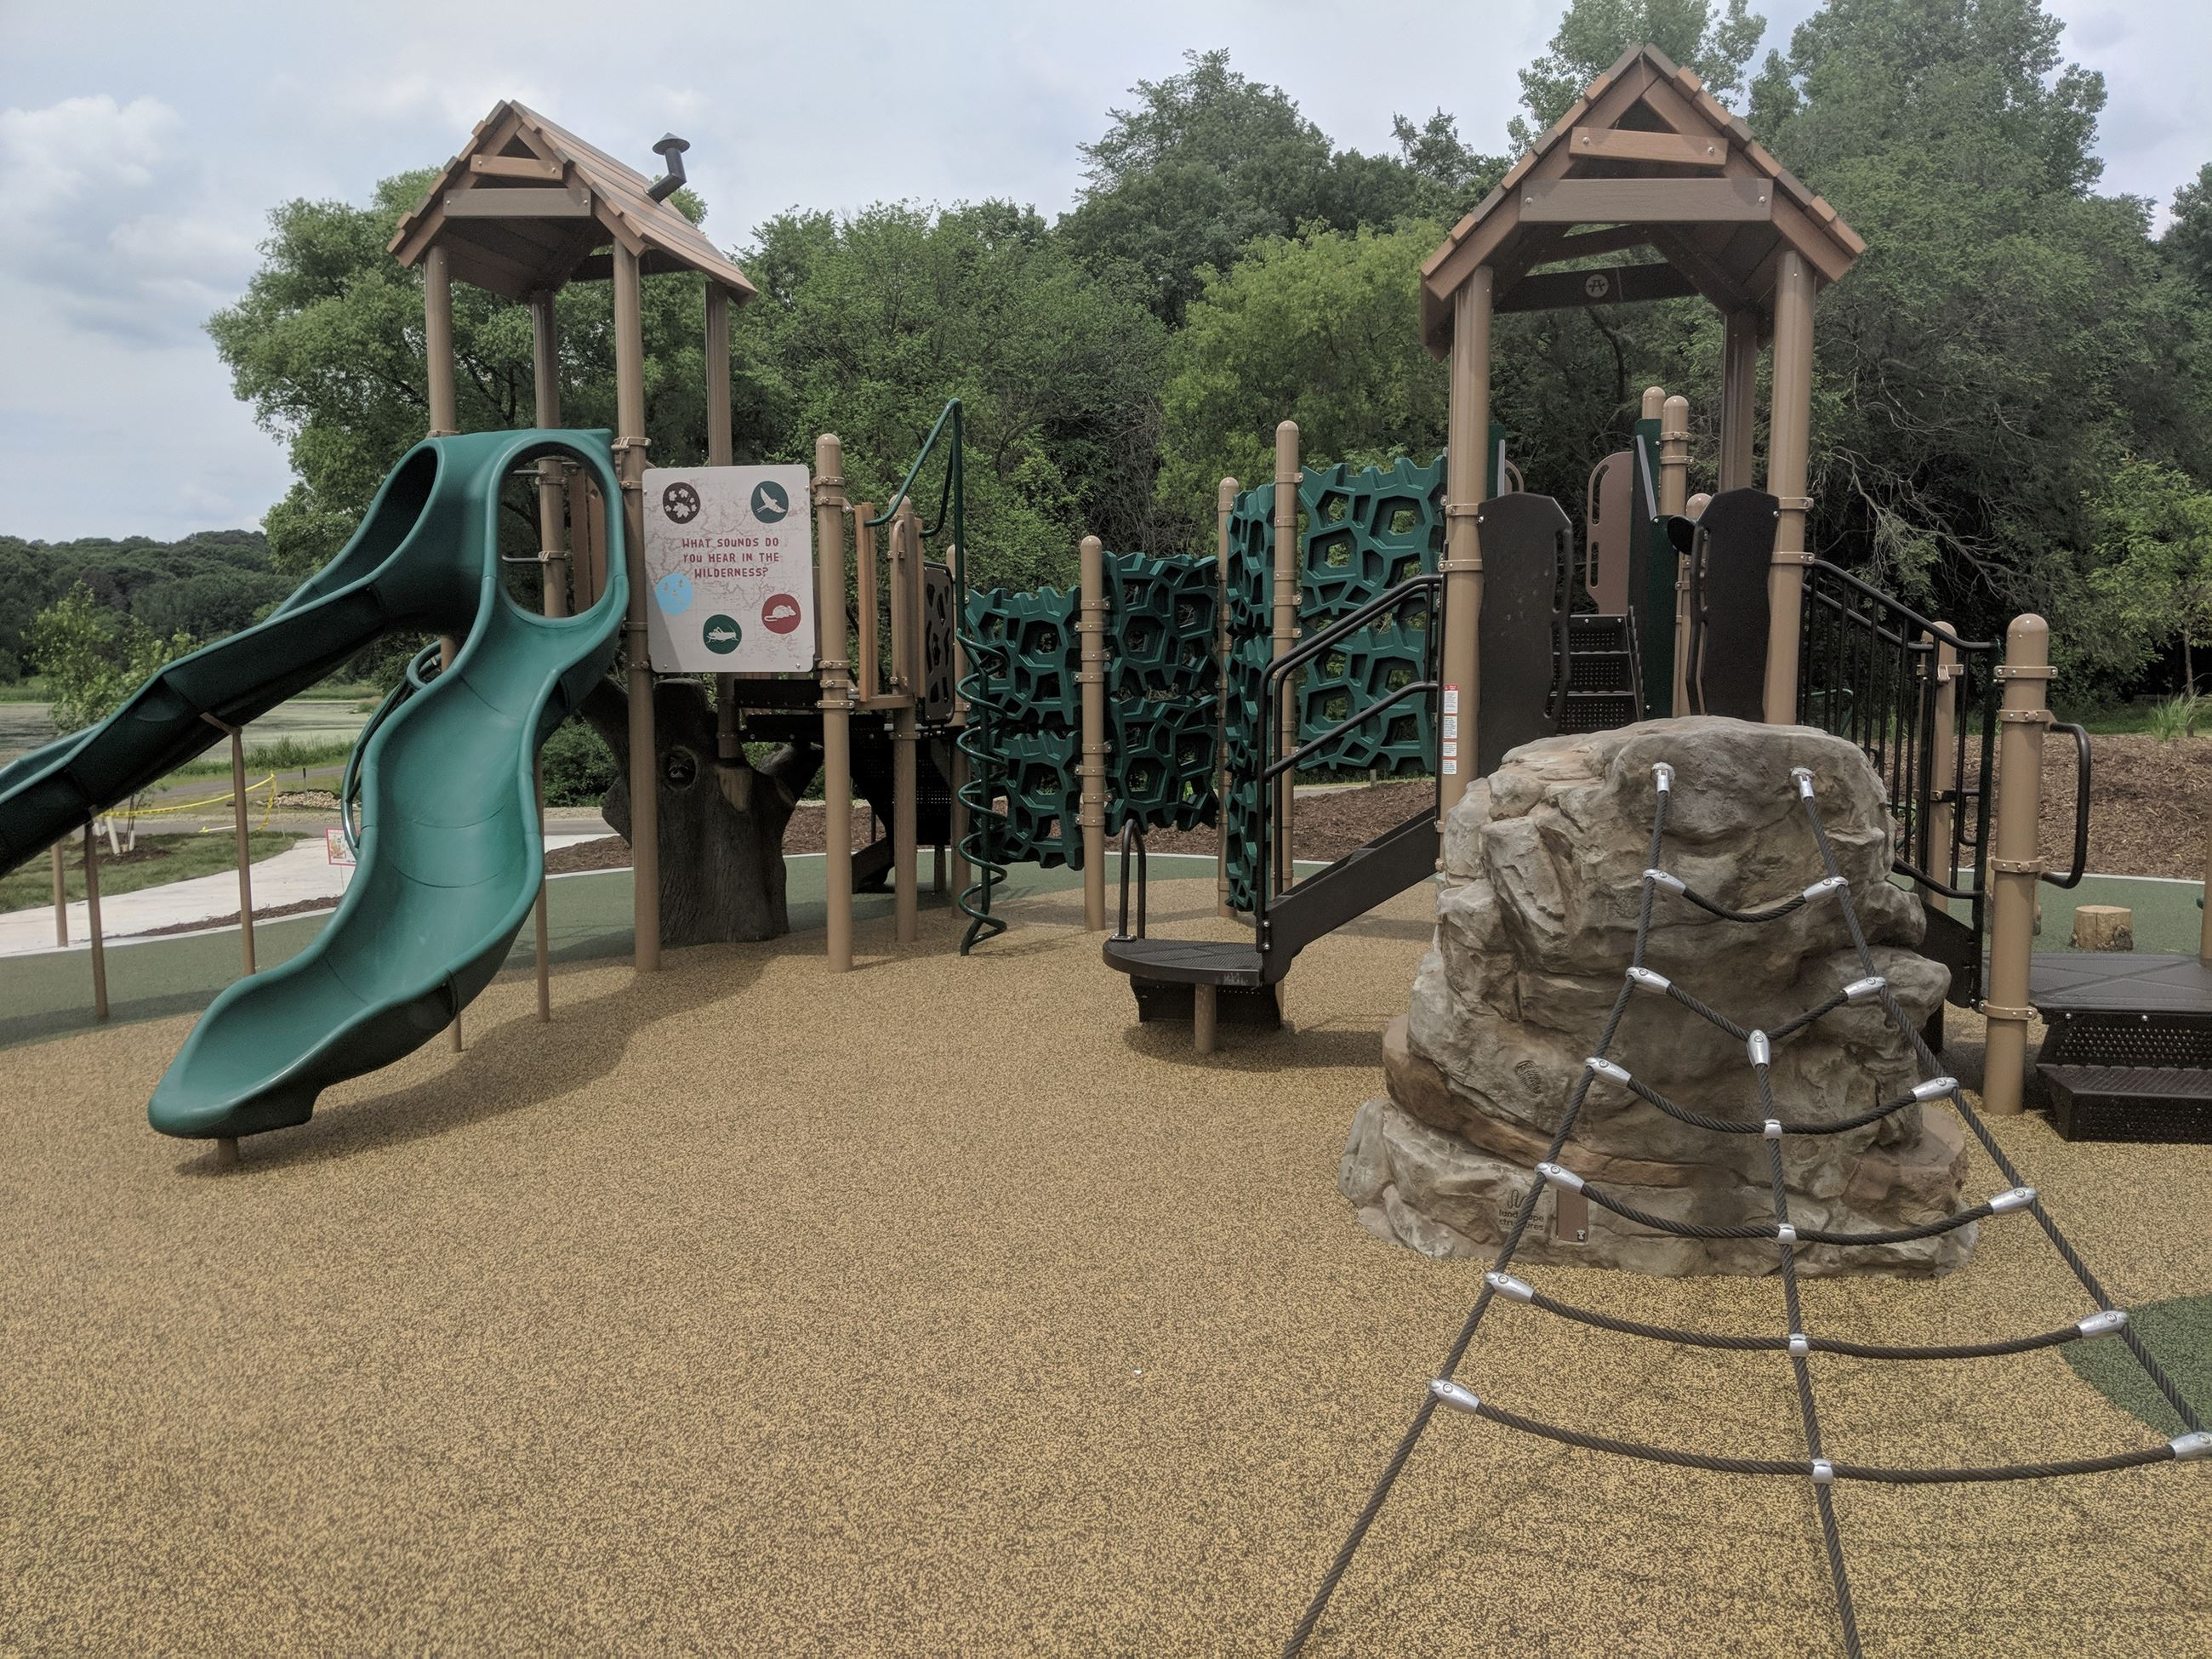 Cottage Grove Ravine Playground